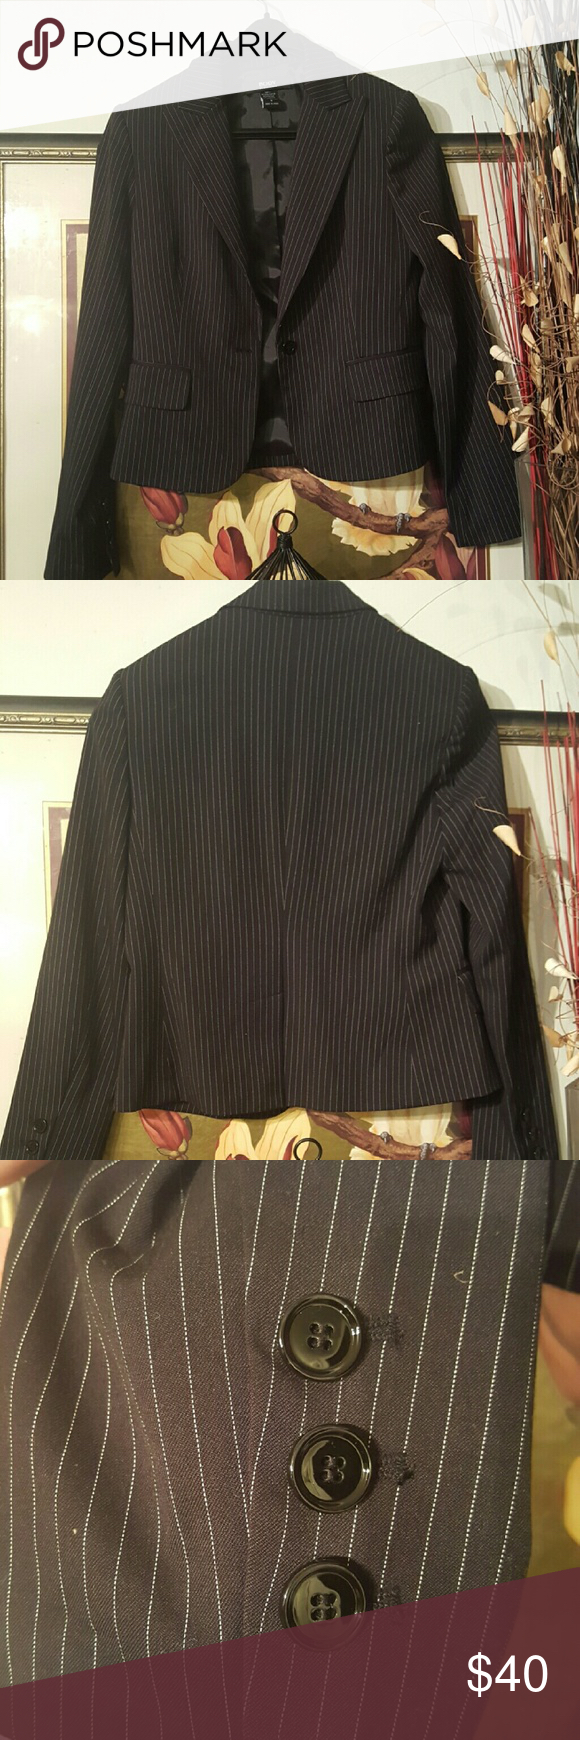 Spotted while shopping on Poshmark: NWOT BODY By Victoria work blazer !!!! #poshmark #fashion #shopping #style #Victoria's Secret #Jackets & Blazers